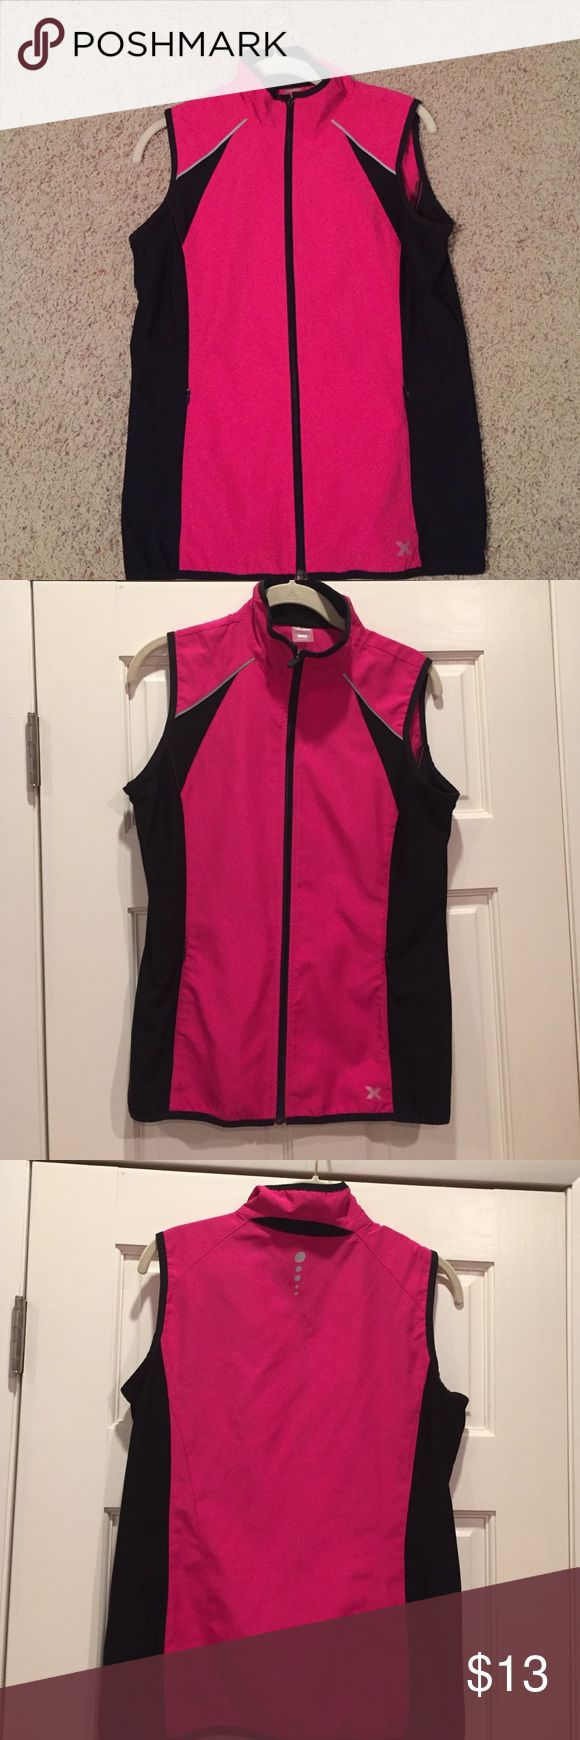 Athletic vest Athletic Vest, size M, brand Xersion. Gently worn, Black, Fushia Pink. Has black stretch side panels. Great add on layer to create a cute athletic look or to throw on over your sports bra or tank top after working out. xersion Jackets & Coats Vests